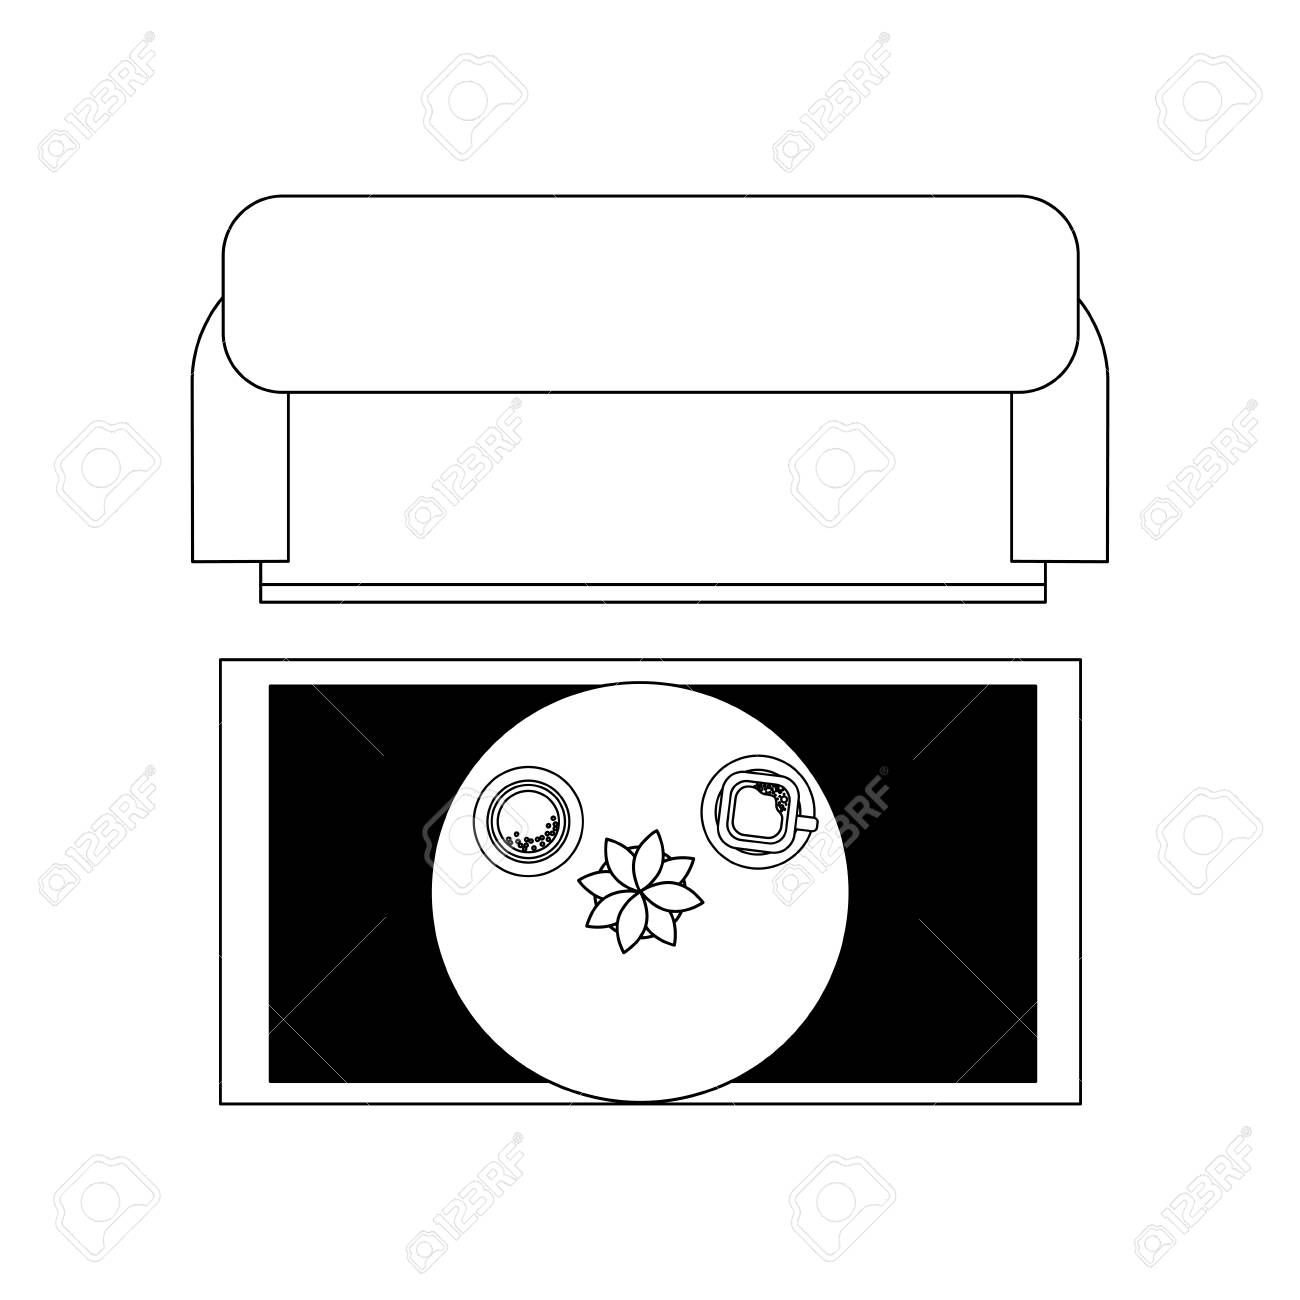 Living Room Sofa Table Coffee Cup Flower Carpet Top View Vector Royalty Free Cliparts Vectors And Stock Illustration Image 101382308